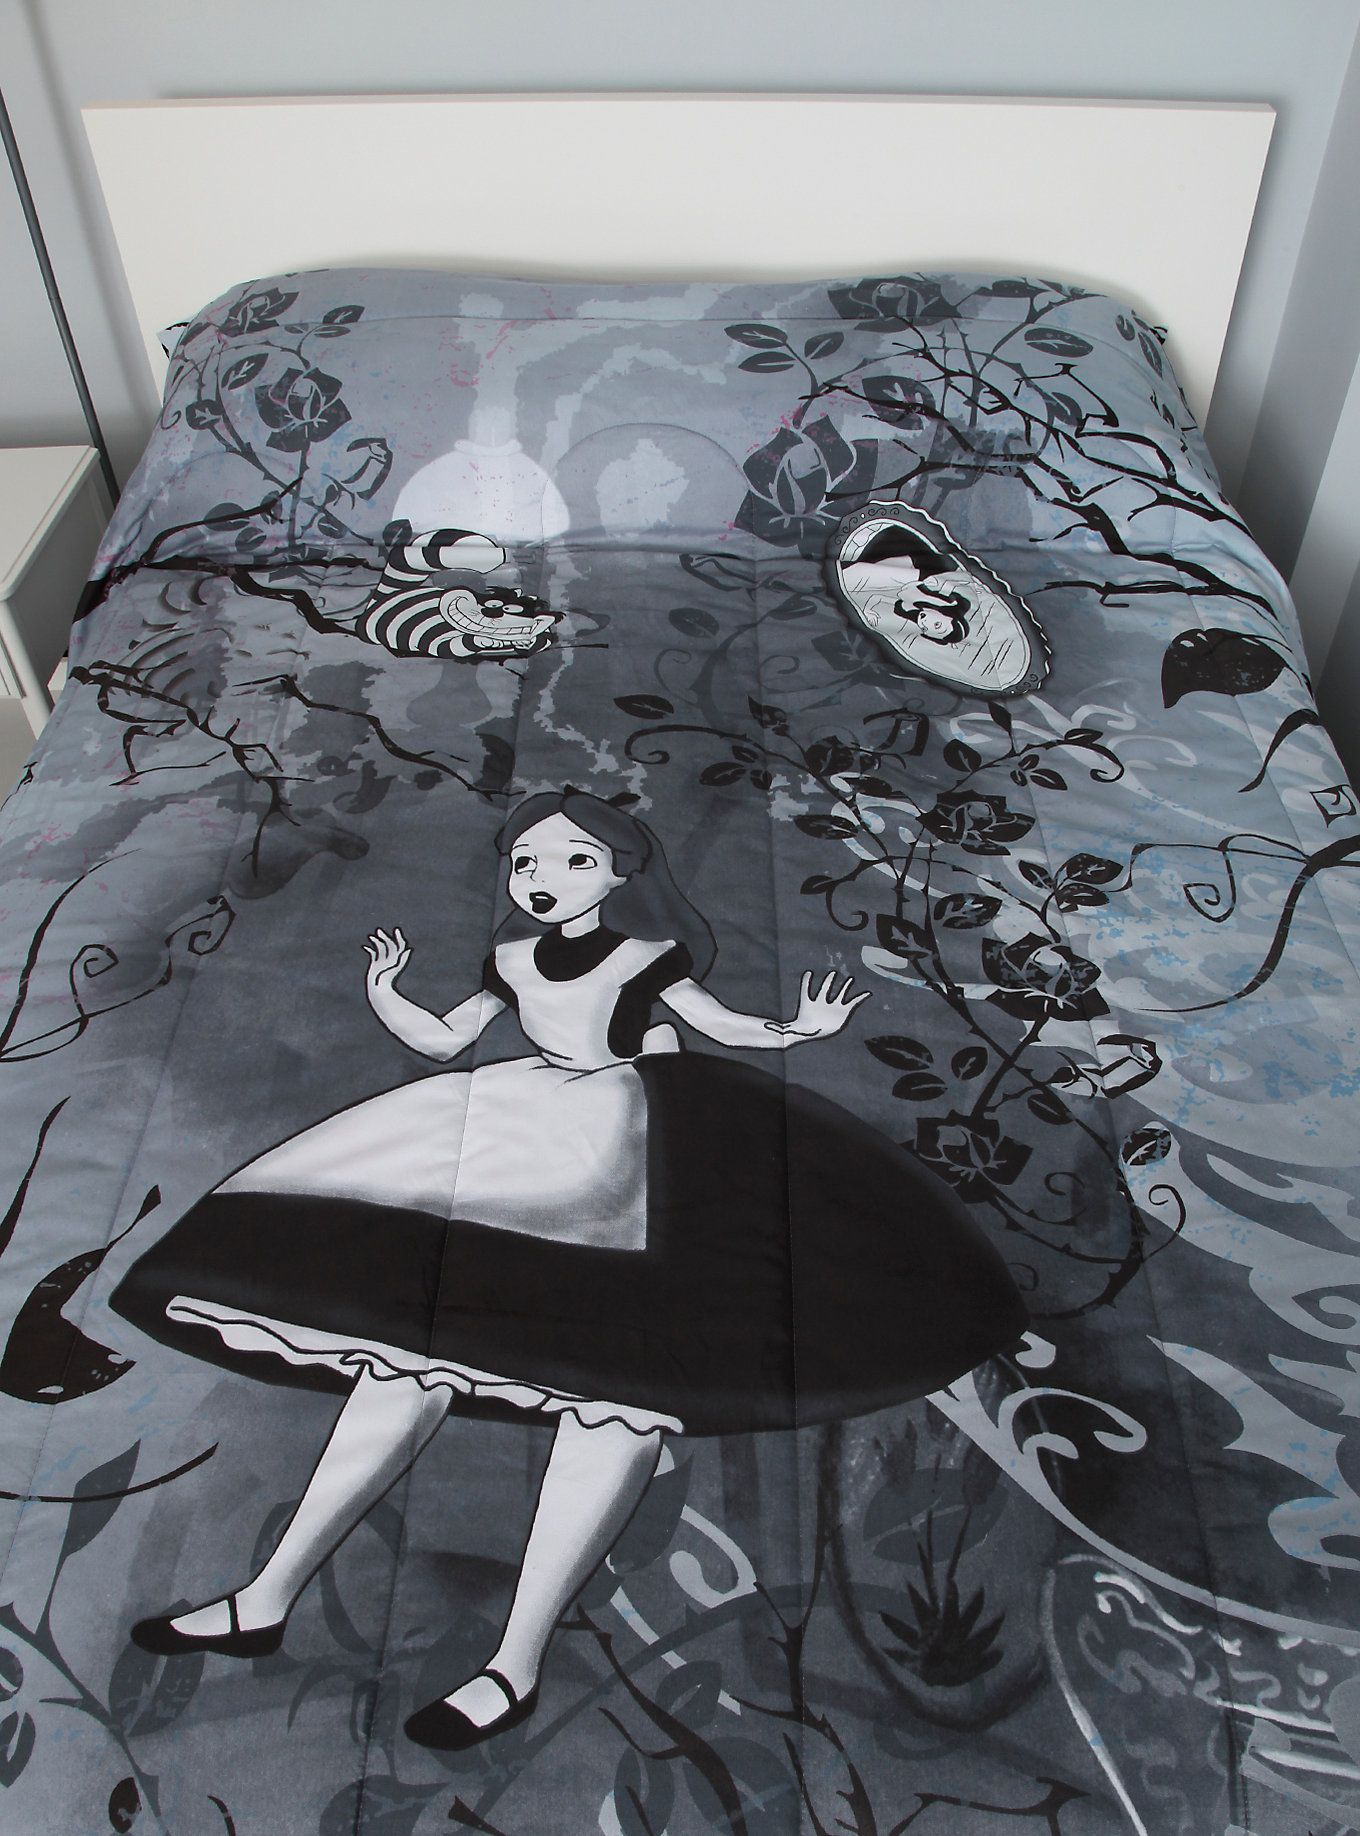 die besten 25 alice in wonderland bedding ideen auf pinterest alice im wunderland. Black Bedroom Furniture Sets. Home Design Ideas